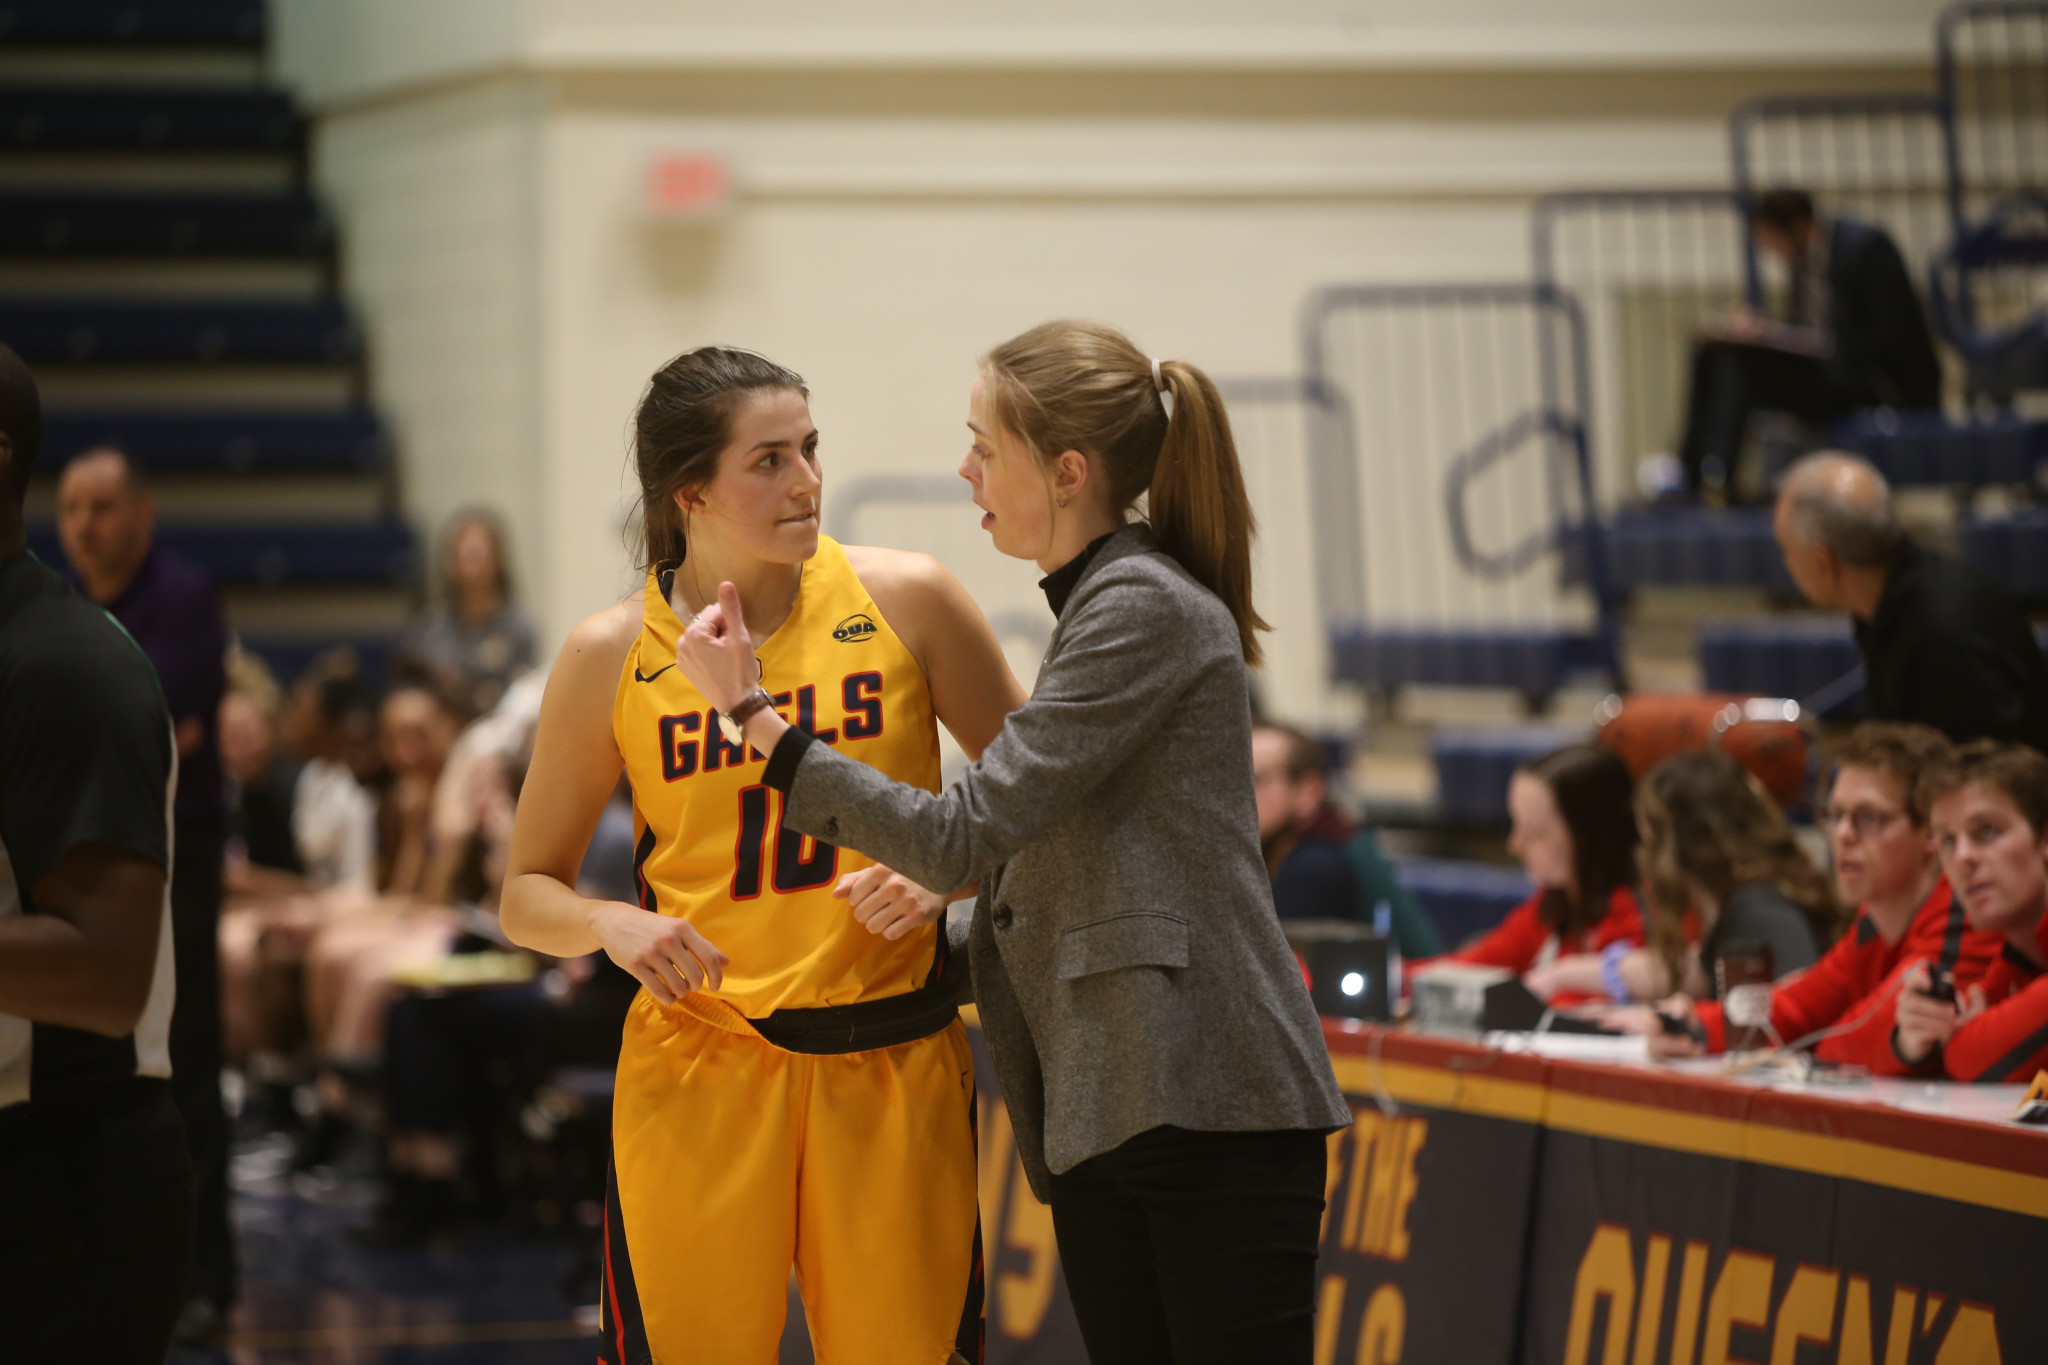 Nicole Barnard, right, who played for the Queen's Gaels women's basketball team and has served as an assistant coach since 2017, will be taking part in the U SPORTS Female Apprentice Coach Program ©U SPORTS